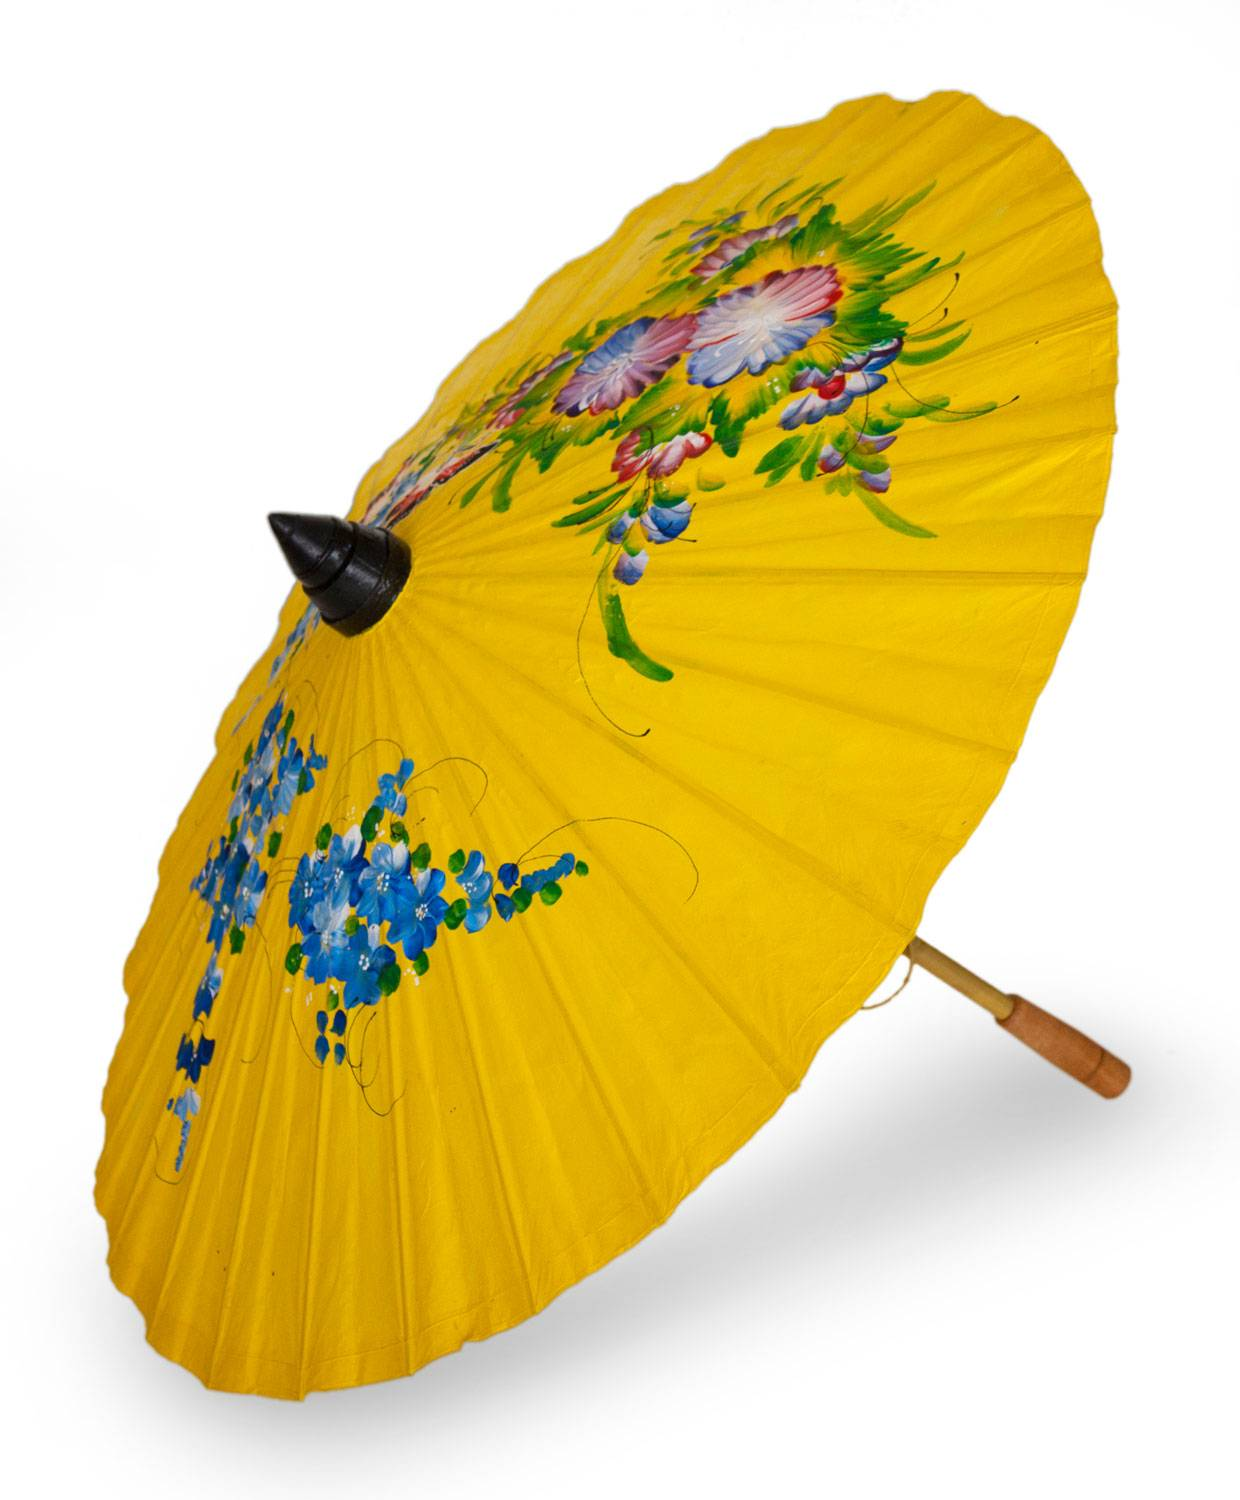 Saa Paper And Bamboo Parasol In Sunny Yellow Sunshine Garden Unicef Market